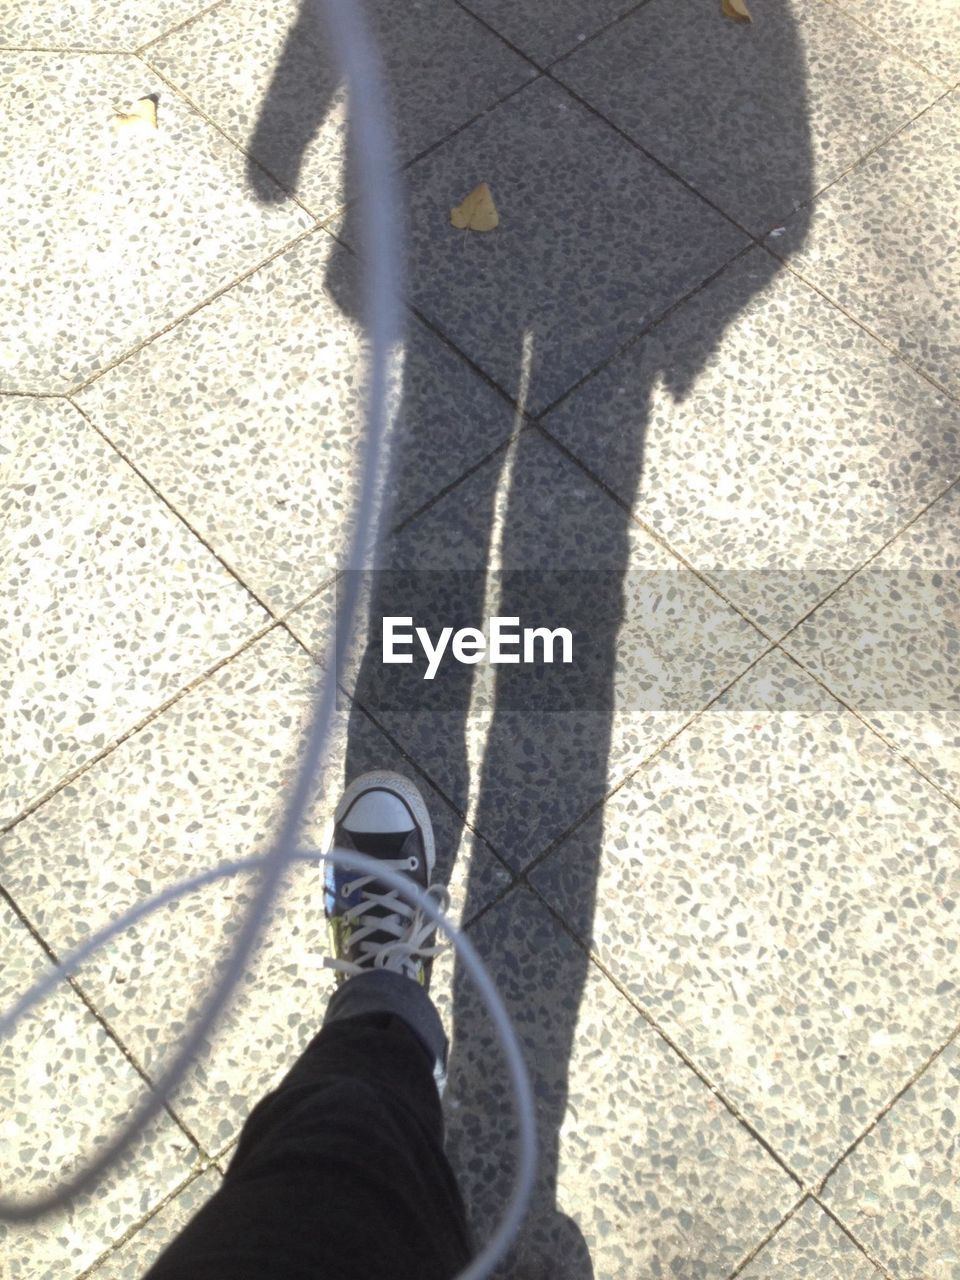 shadow, sunlight, low section, high angle view, one person, human body part, focus on shadow, day, standing, human leg, outdoors, street, leisure activity, lifestyles, real people, people, one man only, adult, close-up, adults only